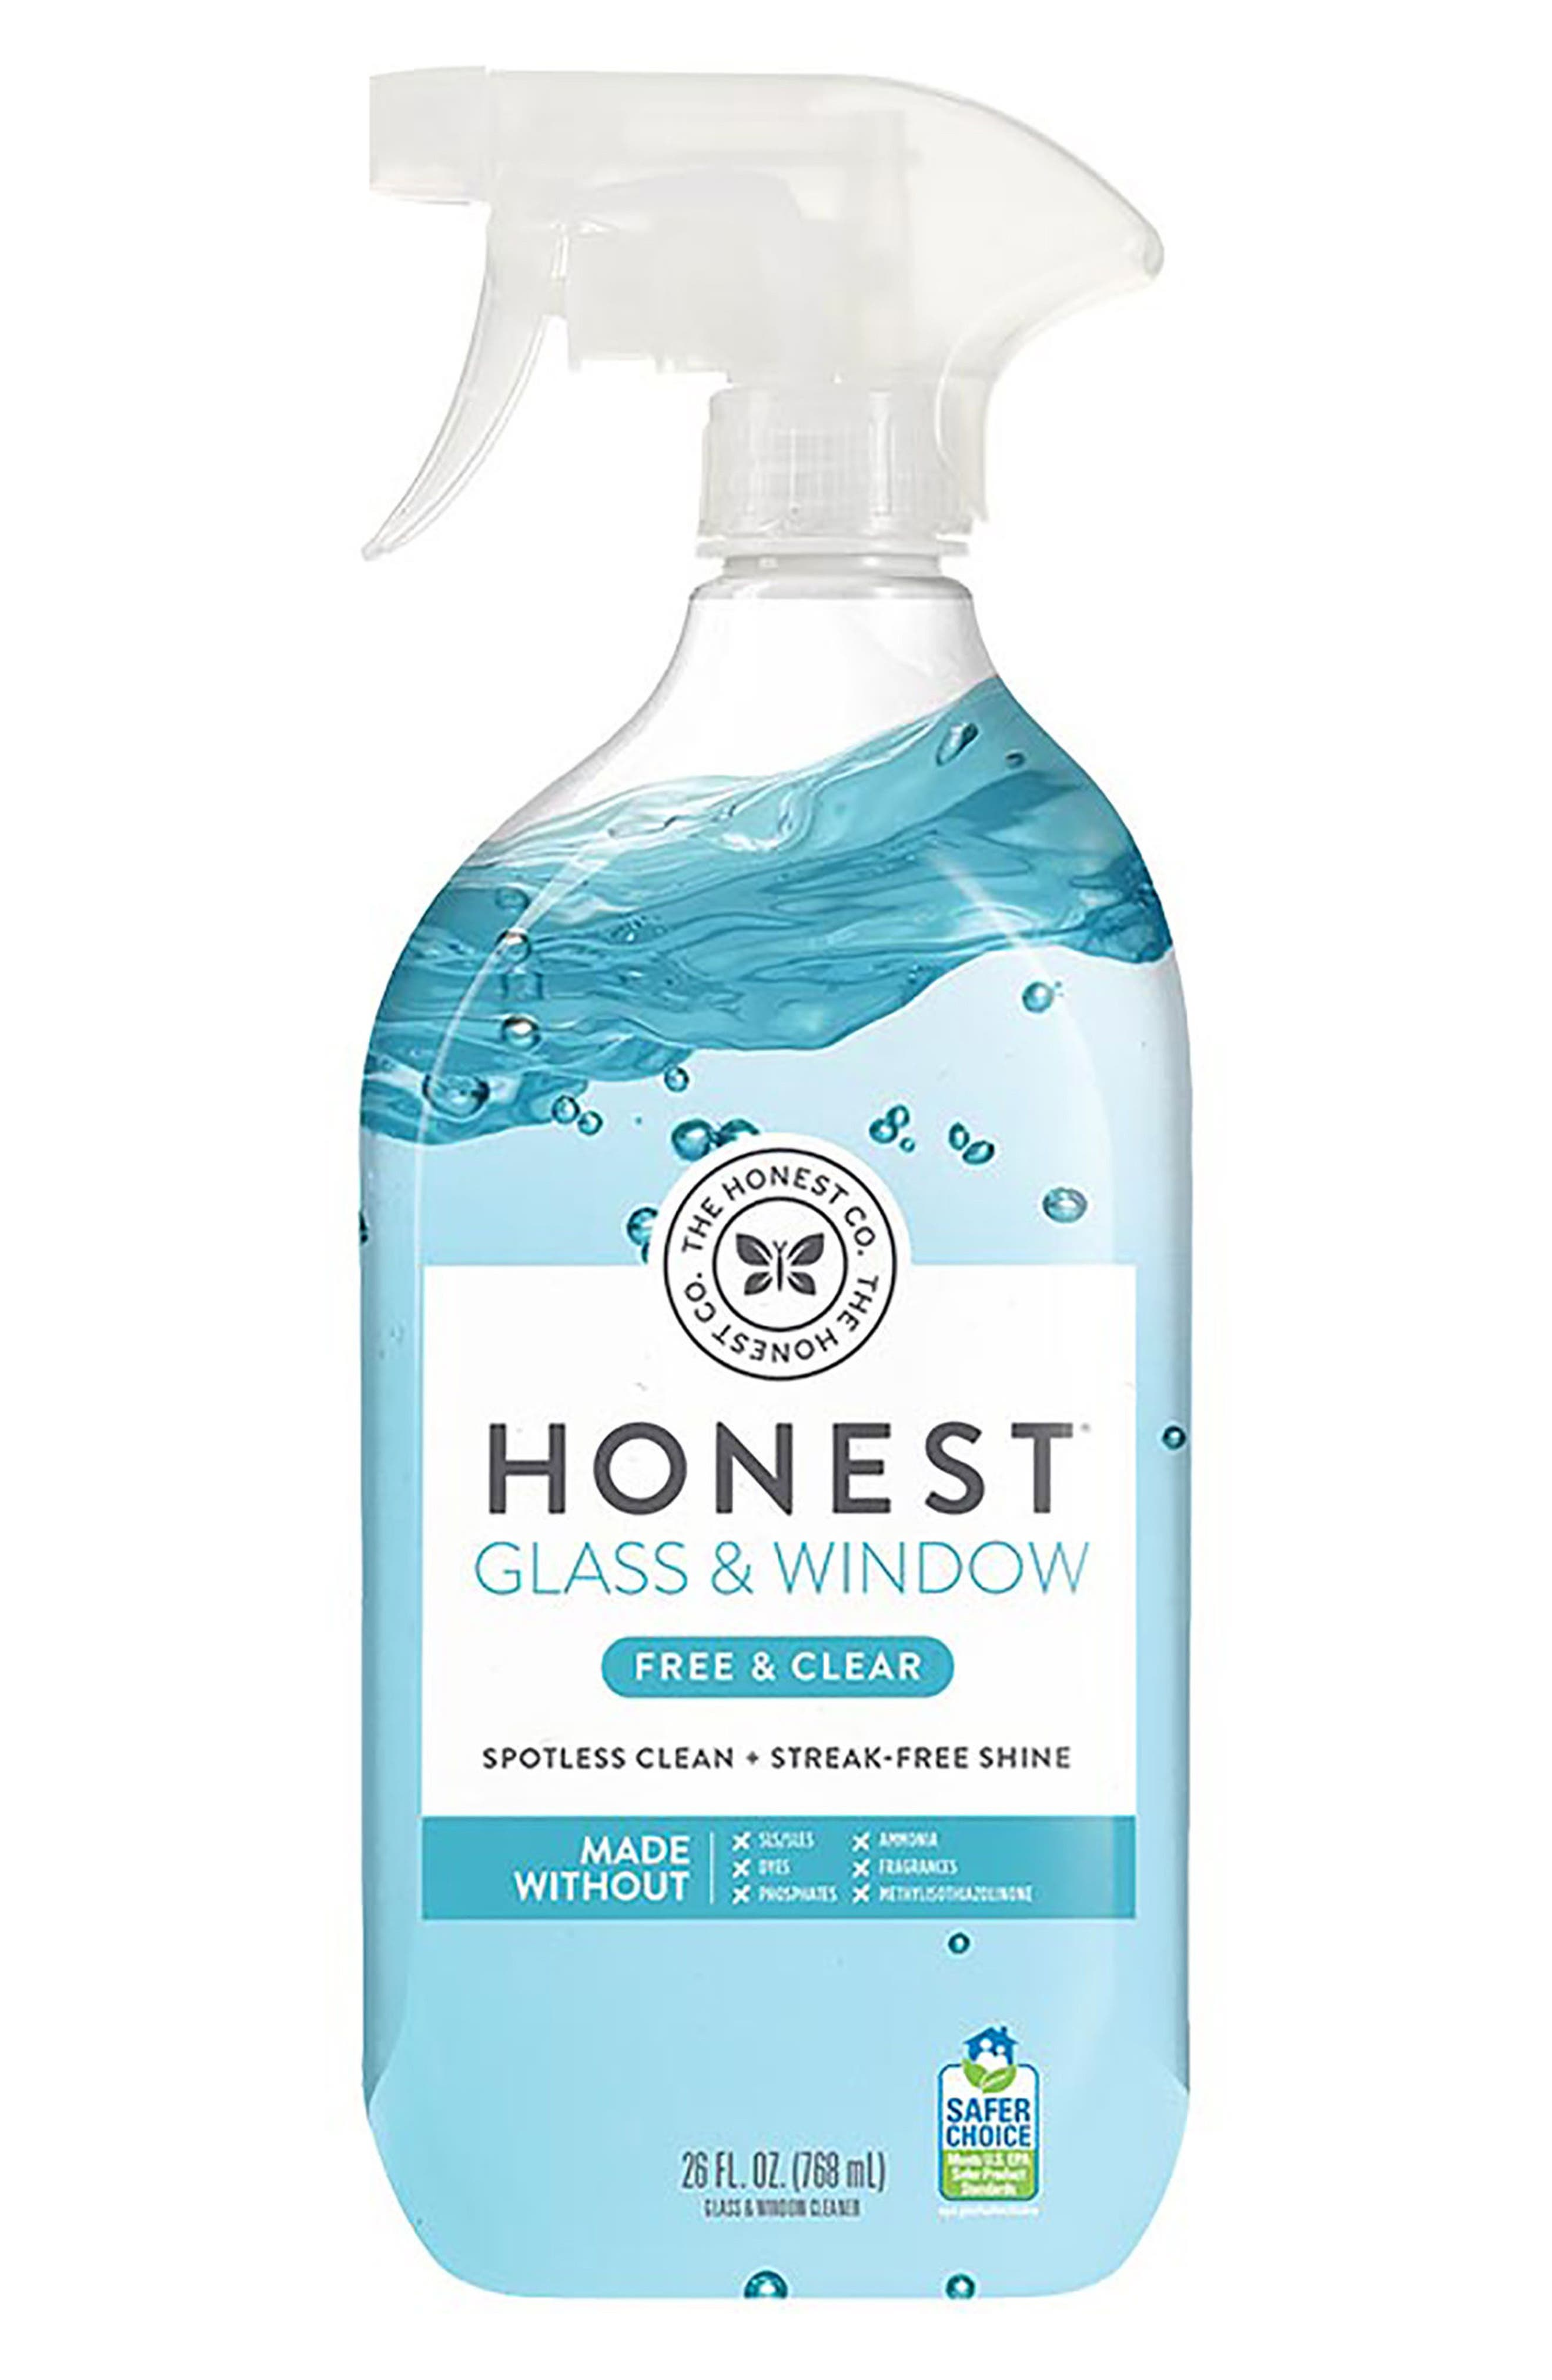 The Honest Company Free & Clear Glass & Window Cleaner